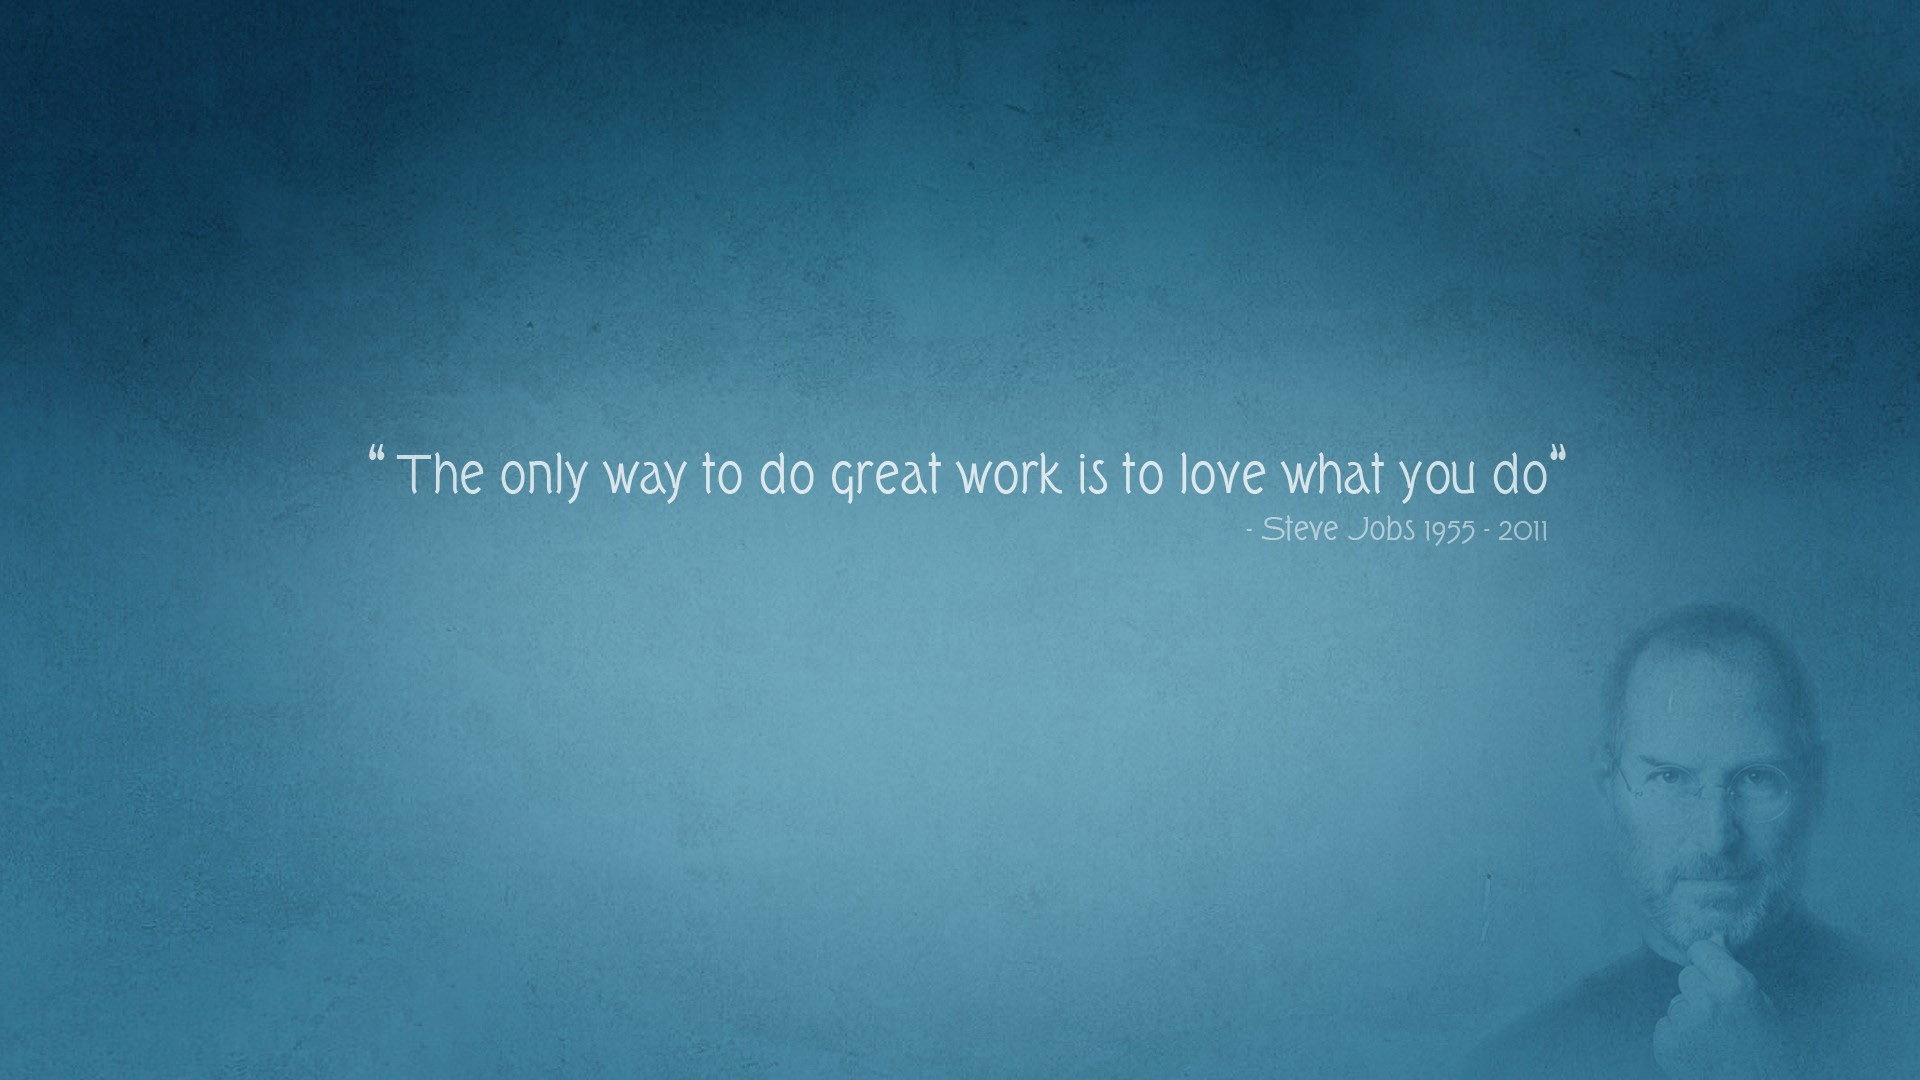 Best Thoughts On Love Your Work Motivation Quote Of - Desktop Wallpaper Steve Jobs Quotes - HD Wallpaper